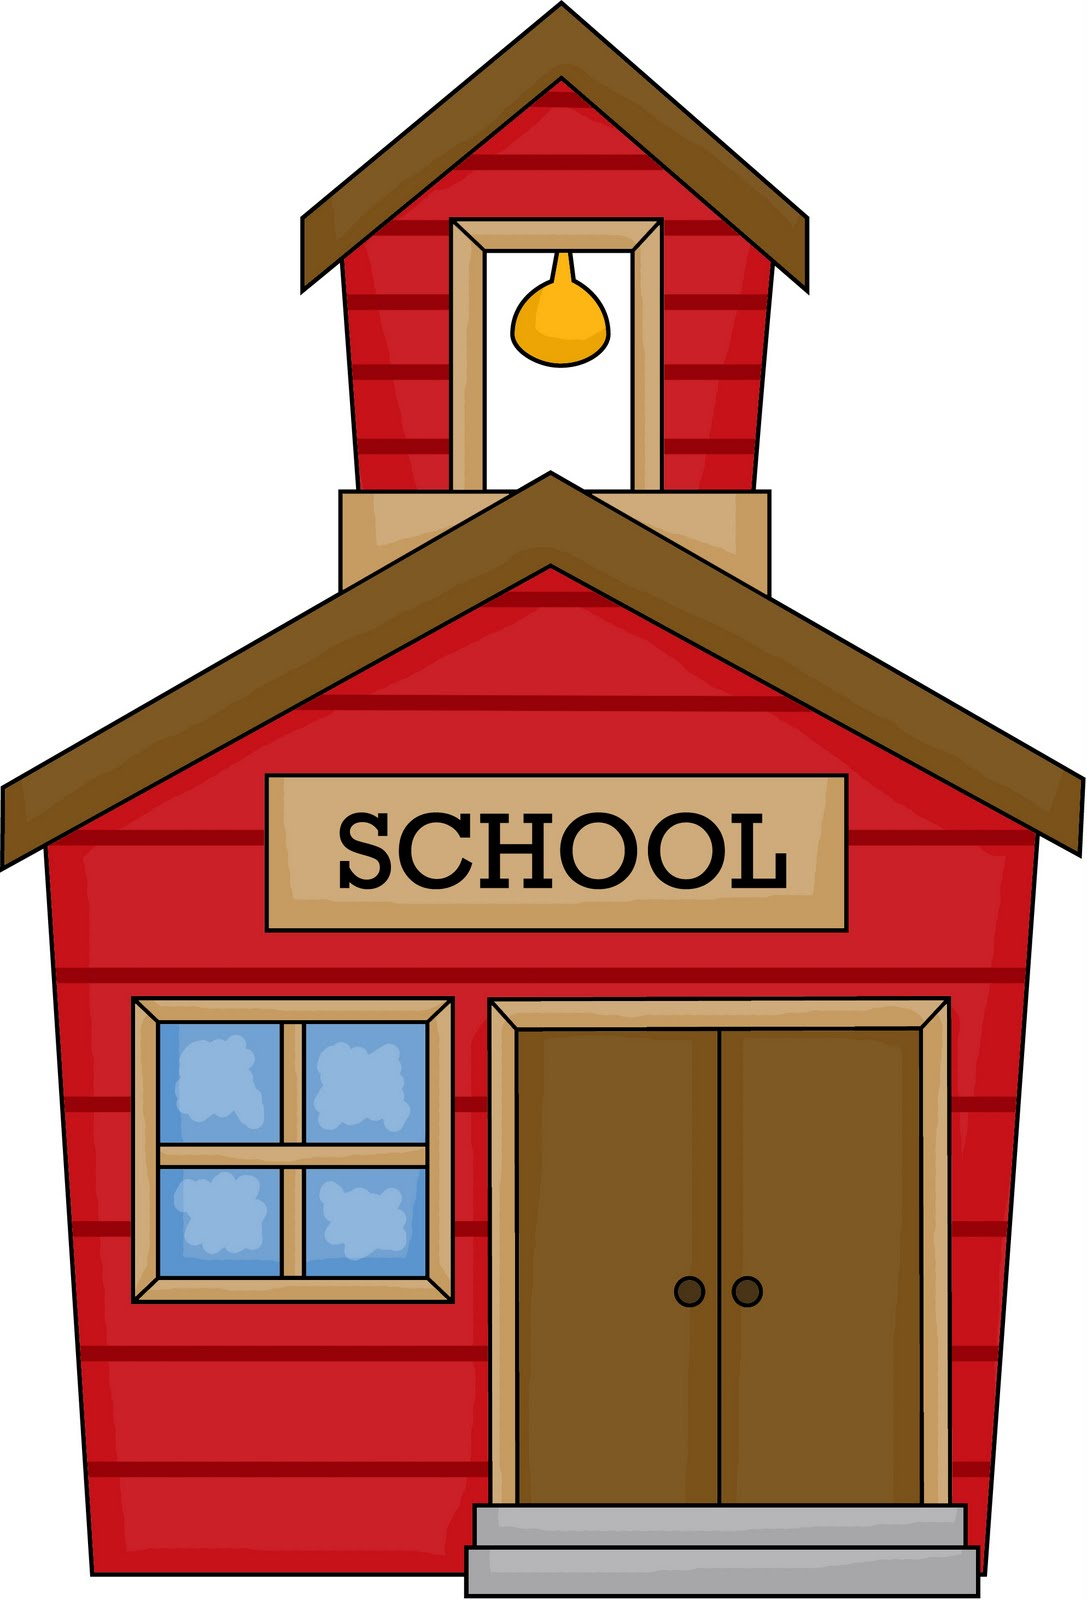 School building clipart png image freeuse stock School Building Clipart & School Building Clip Art Images ... image freeuse stock